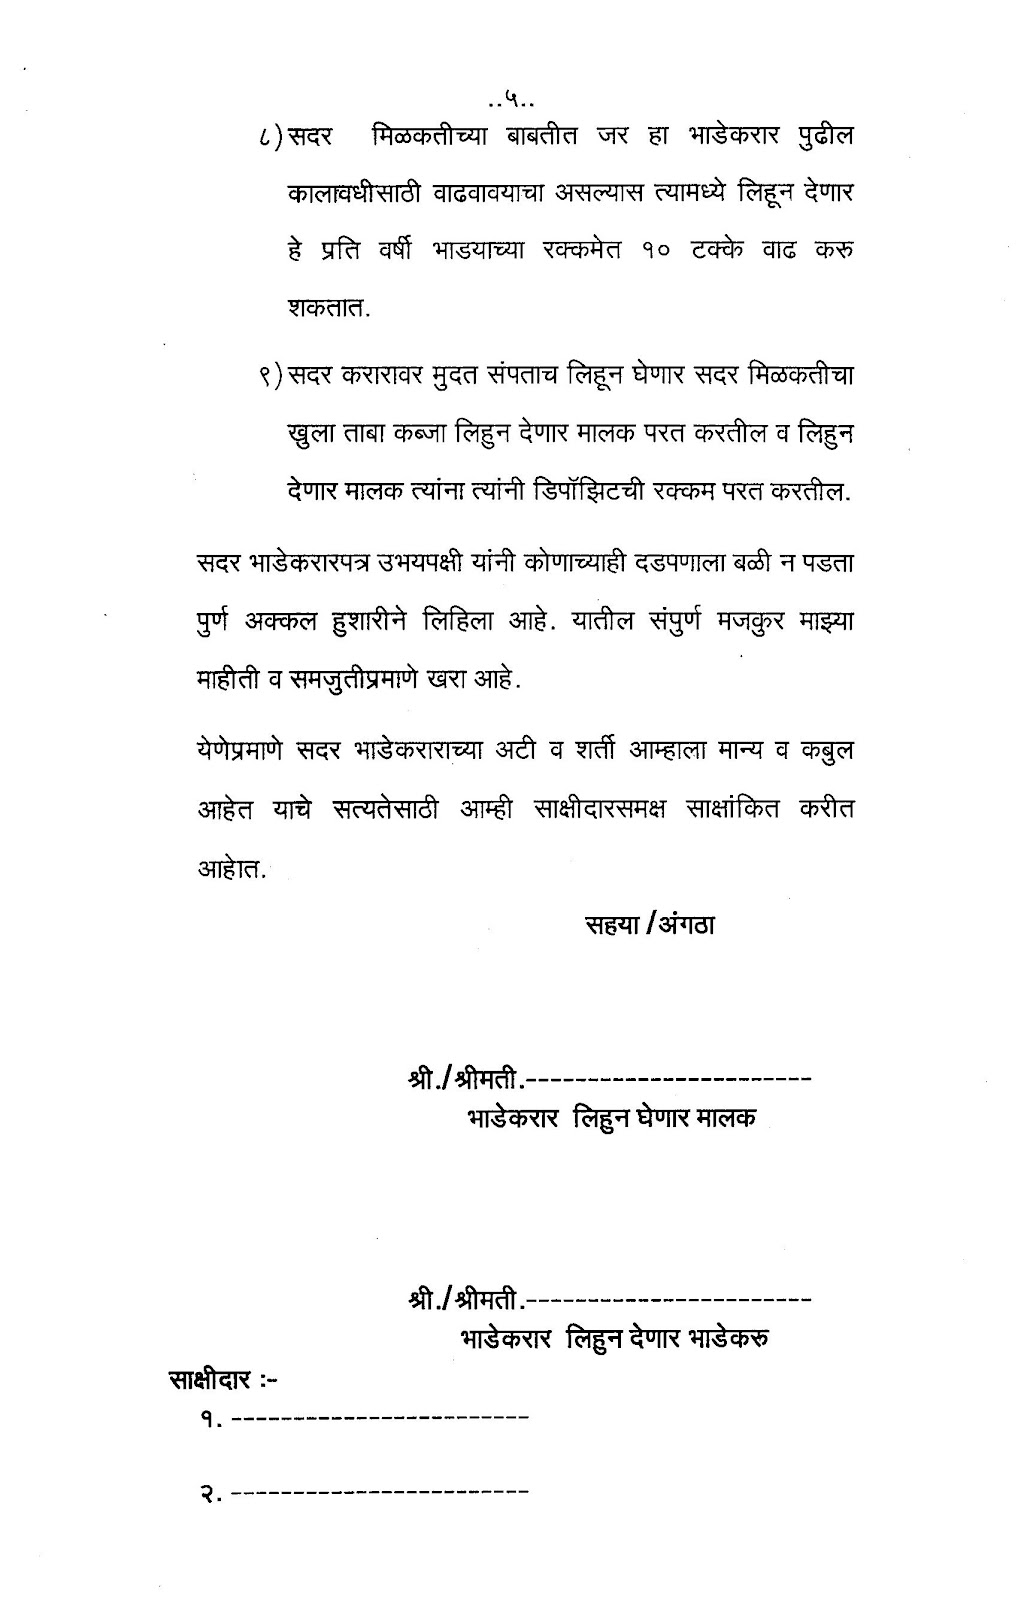 Lease Agreement Format In Marathi  Lease Rent Agreement Format